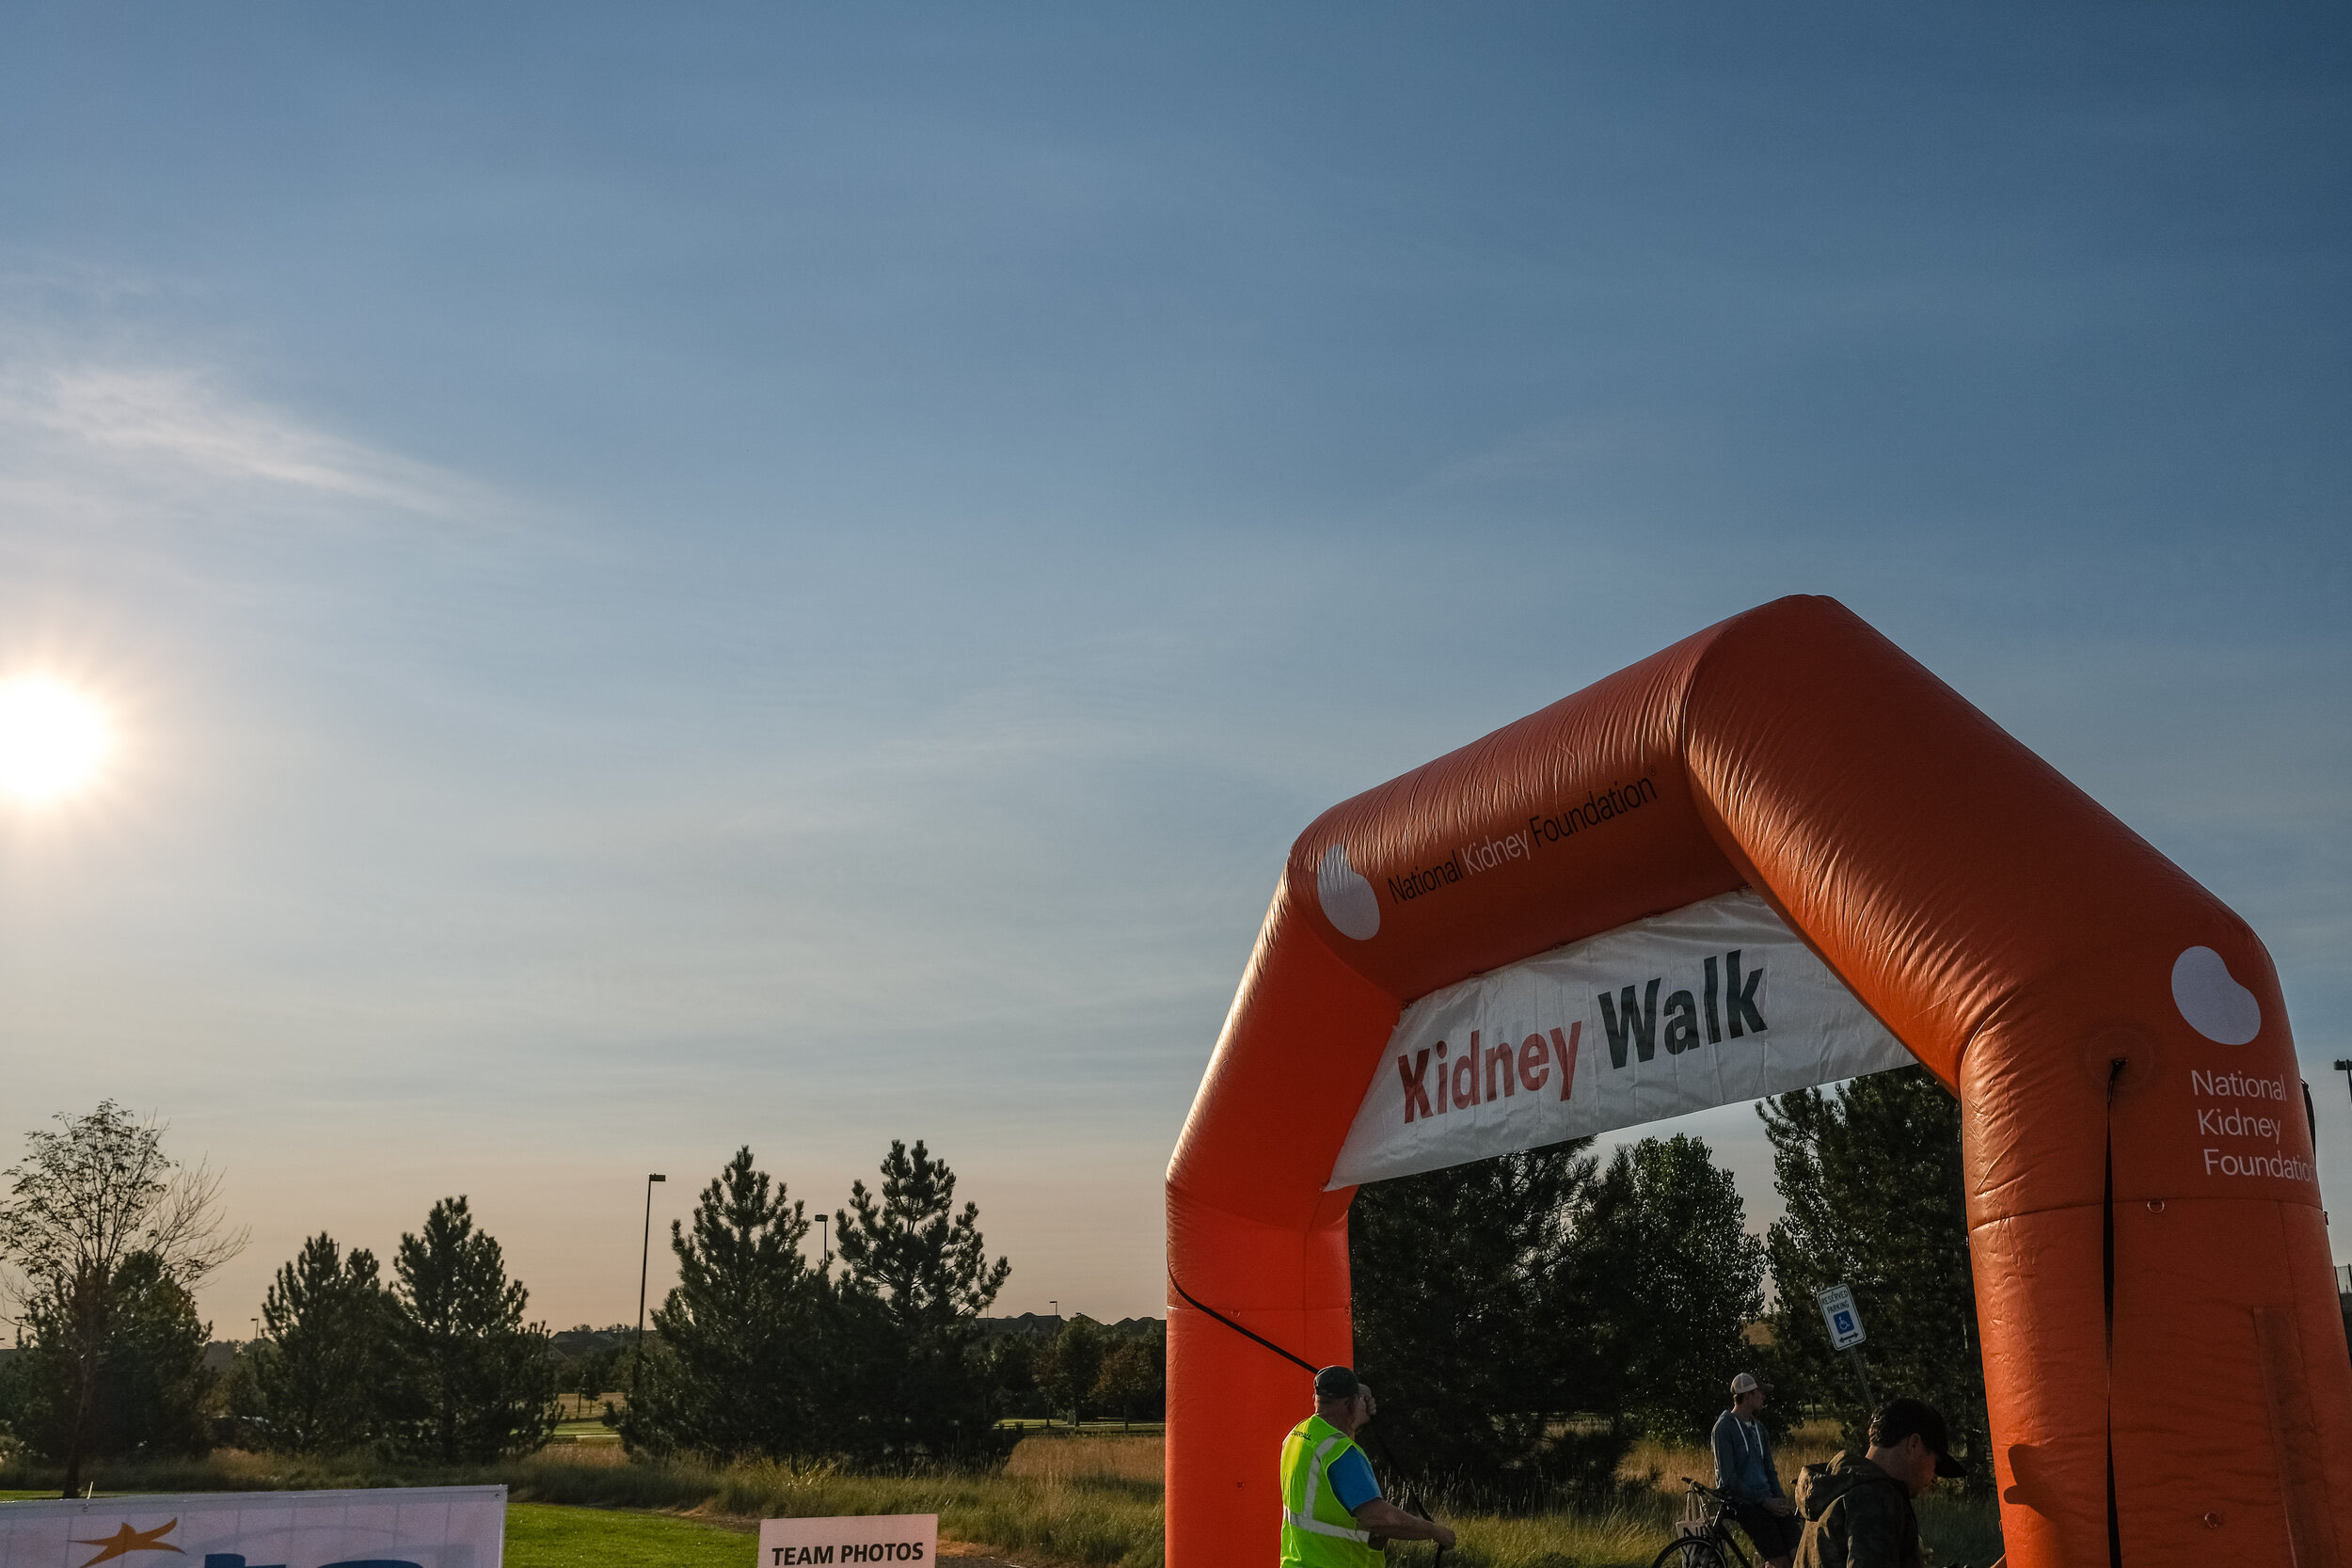 Denver Kidney Walk-4.jpg